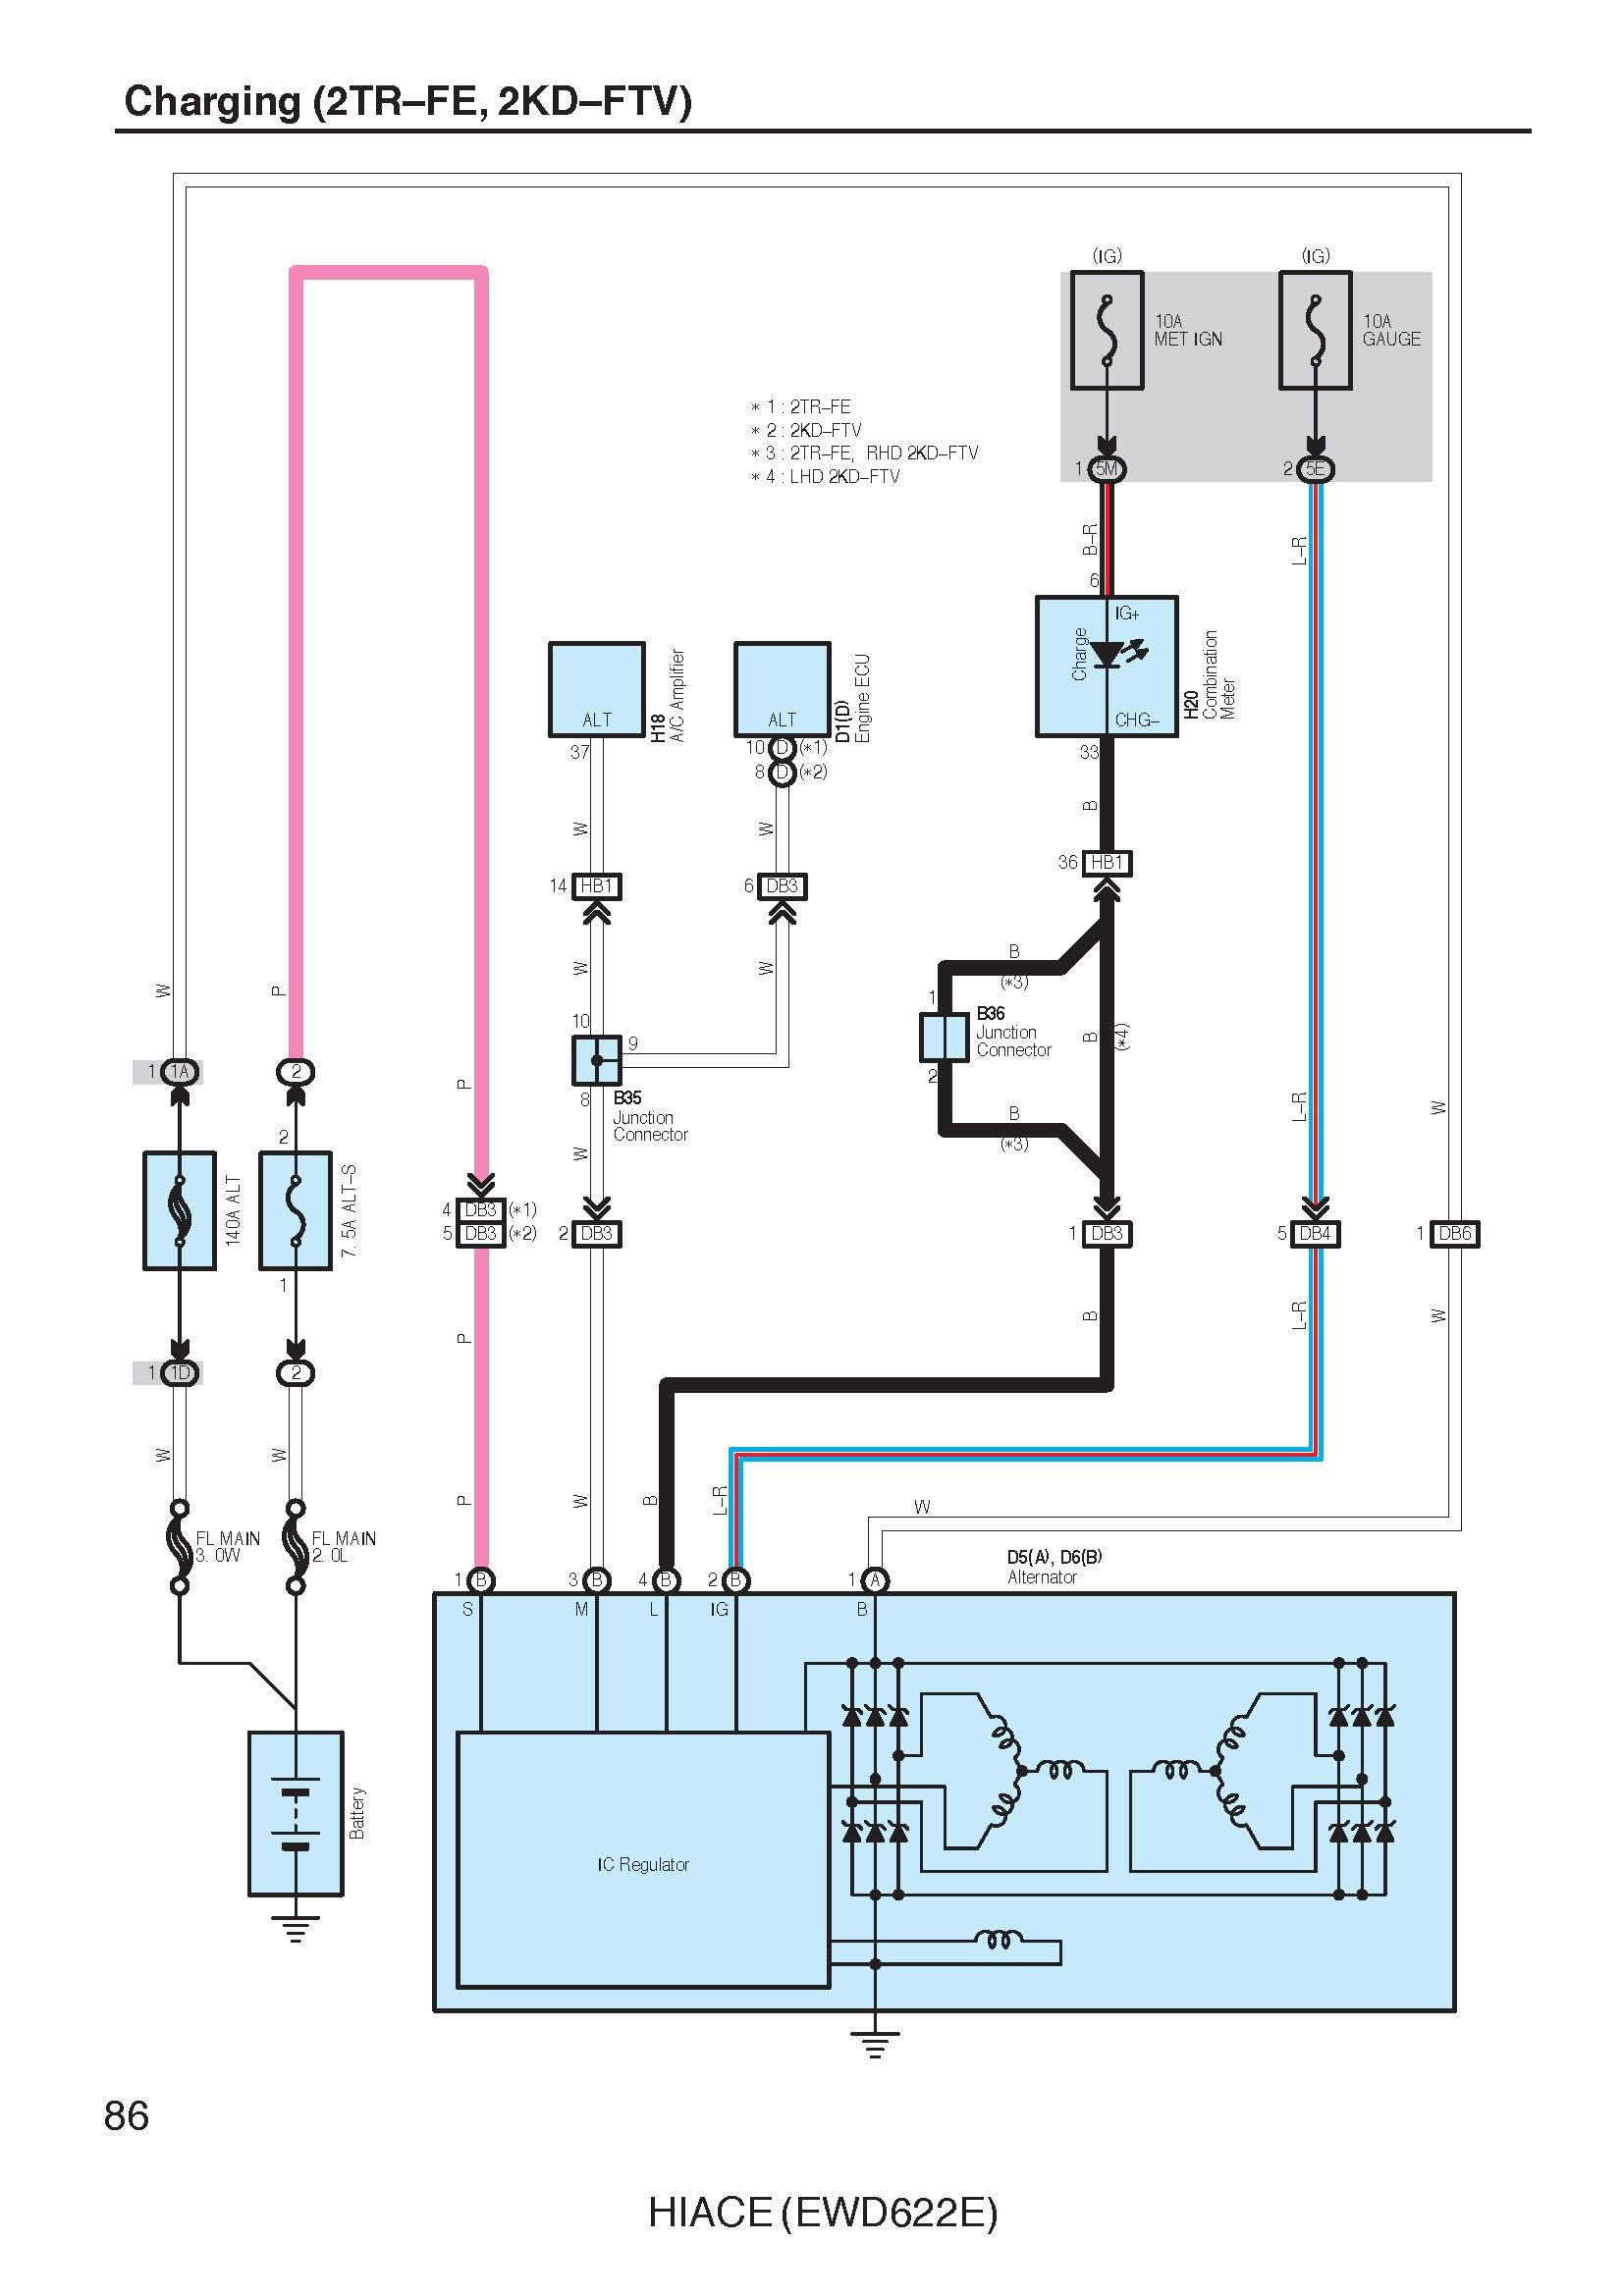 2006 Toyota Hiace Full Original and Coloured Electrical Wiring Diagrams (FREE PDF) | sellfy